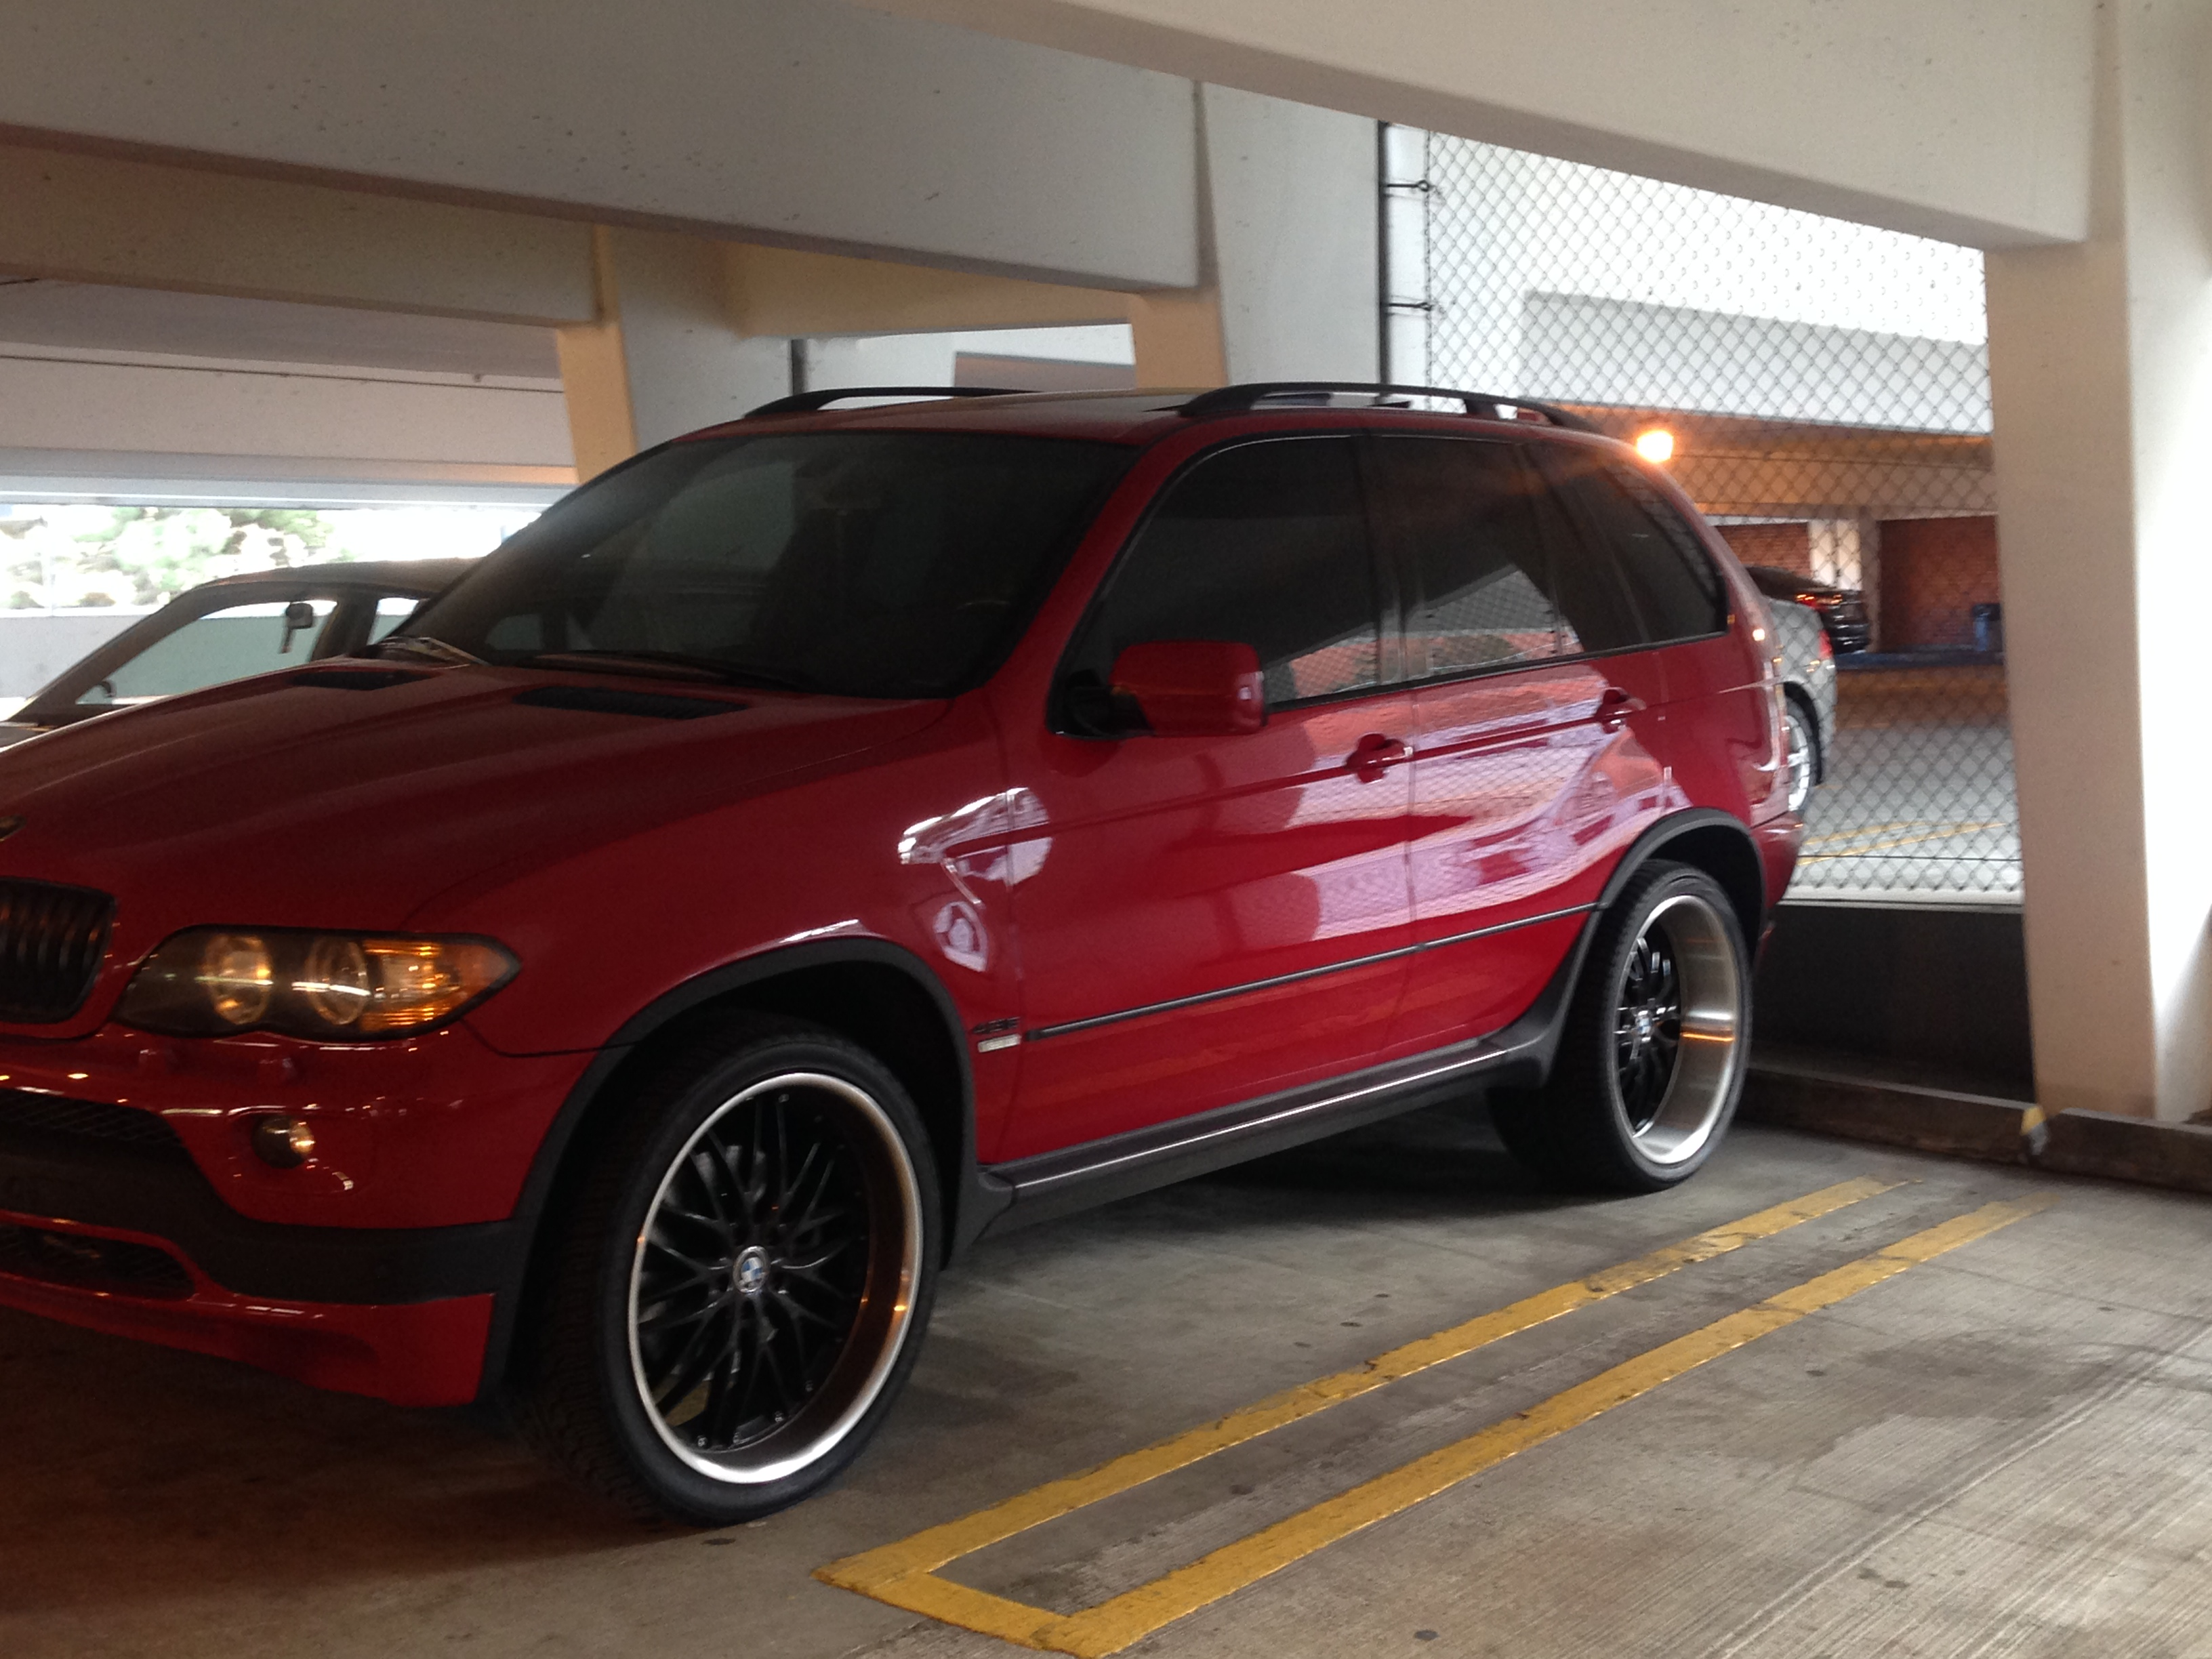 BMW For Sale 2004 Imola Red X5 48is  BMW M5 Forum and M6 Forums